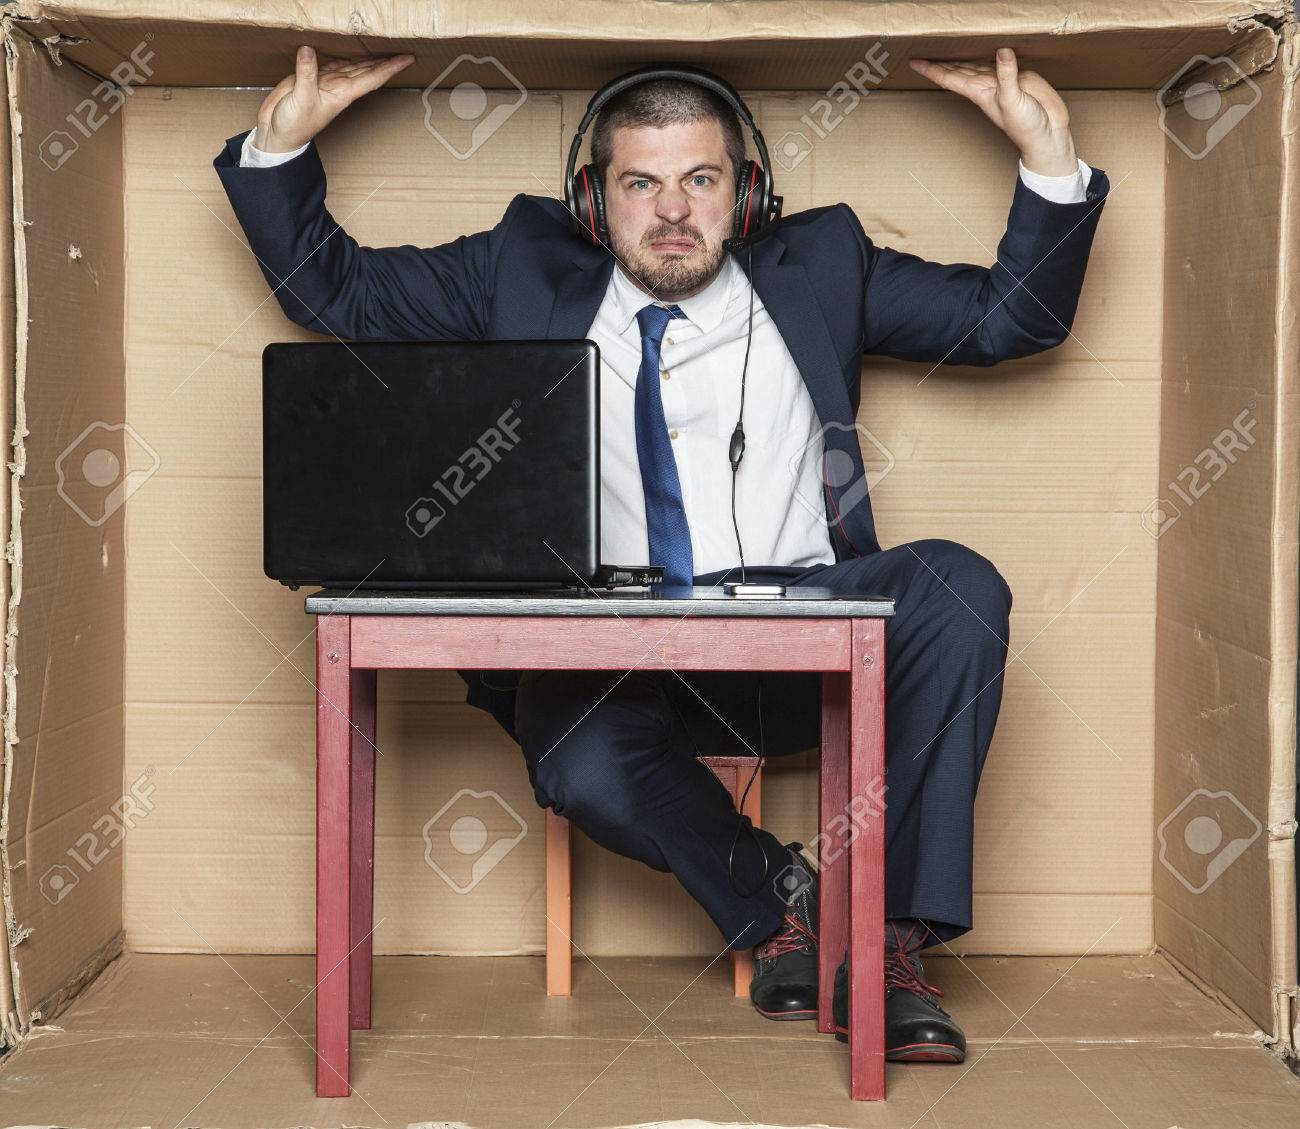 cramped office space. Cramped Office At The Workplace Stock Photo - 55798019 Space